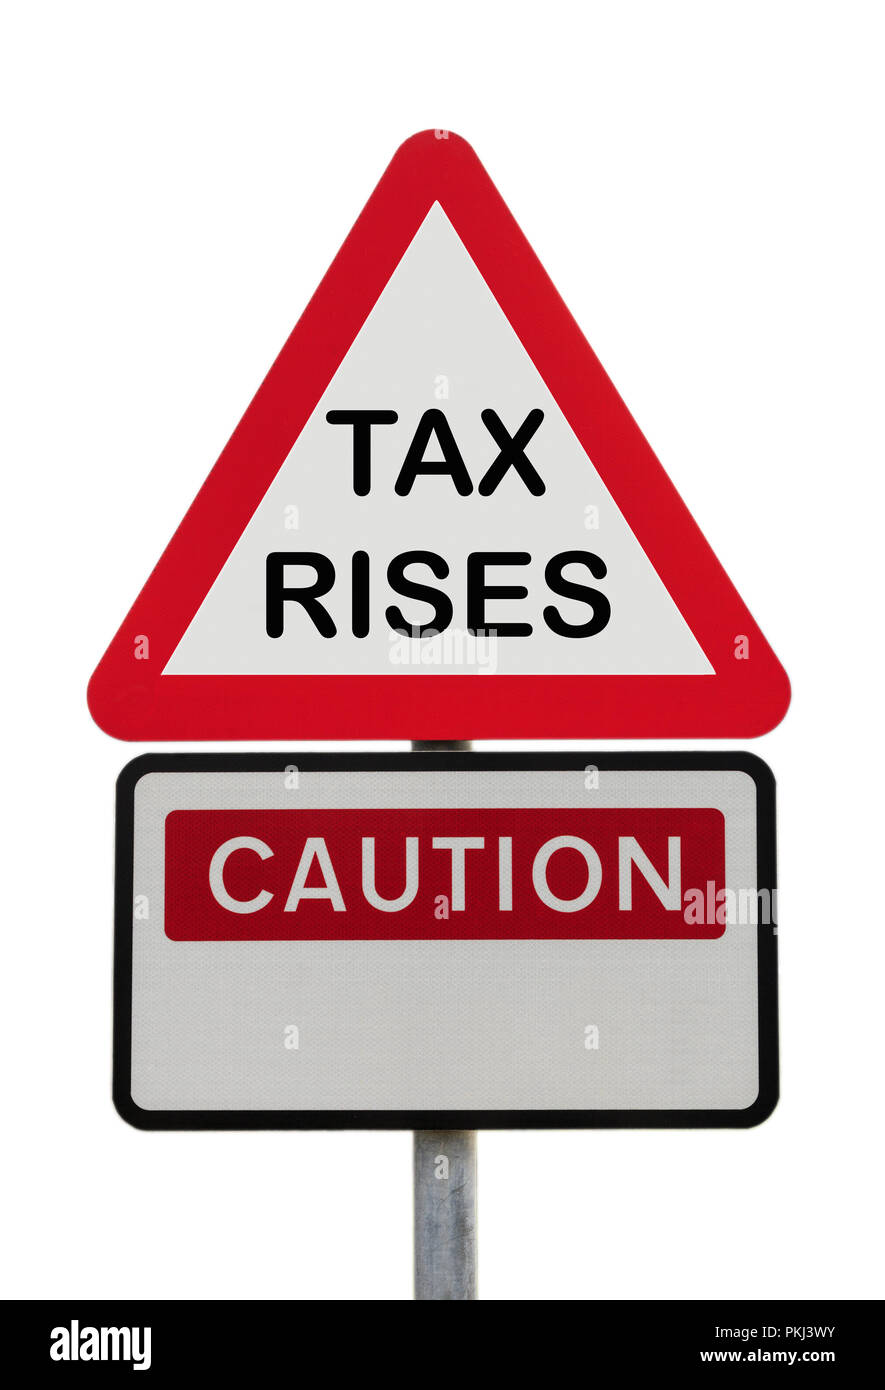 Triangular road sign warning Caution TAX RISES to illustrate financial future concept. England, UK, Britain, Europe Stock Photo